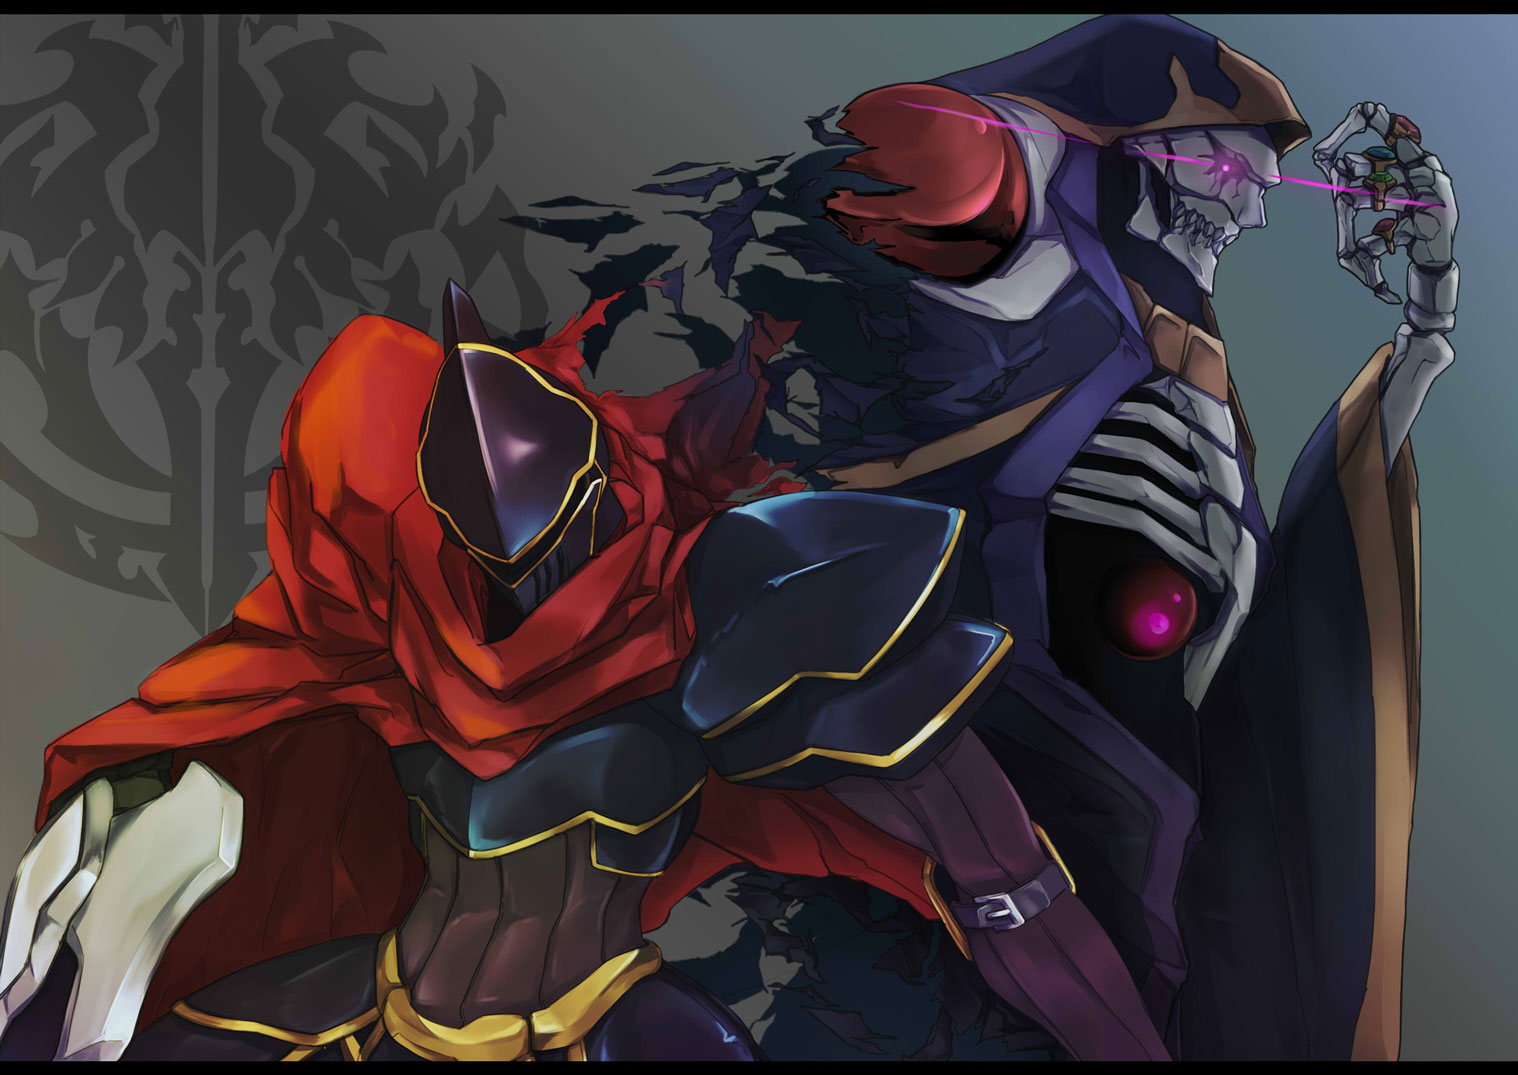 Iphone Sayings Wallpaper Anime Overlord Overlord Ainz Ooal Gown Wallpaper